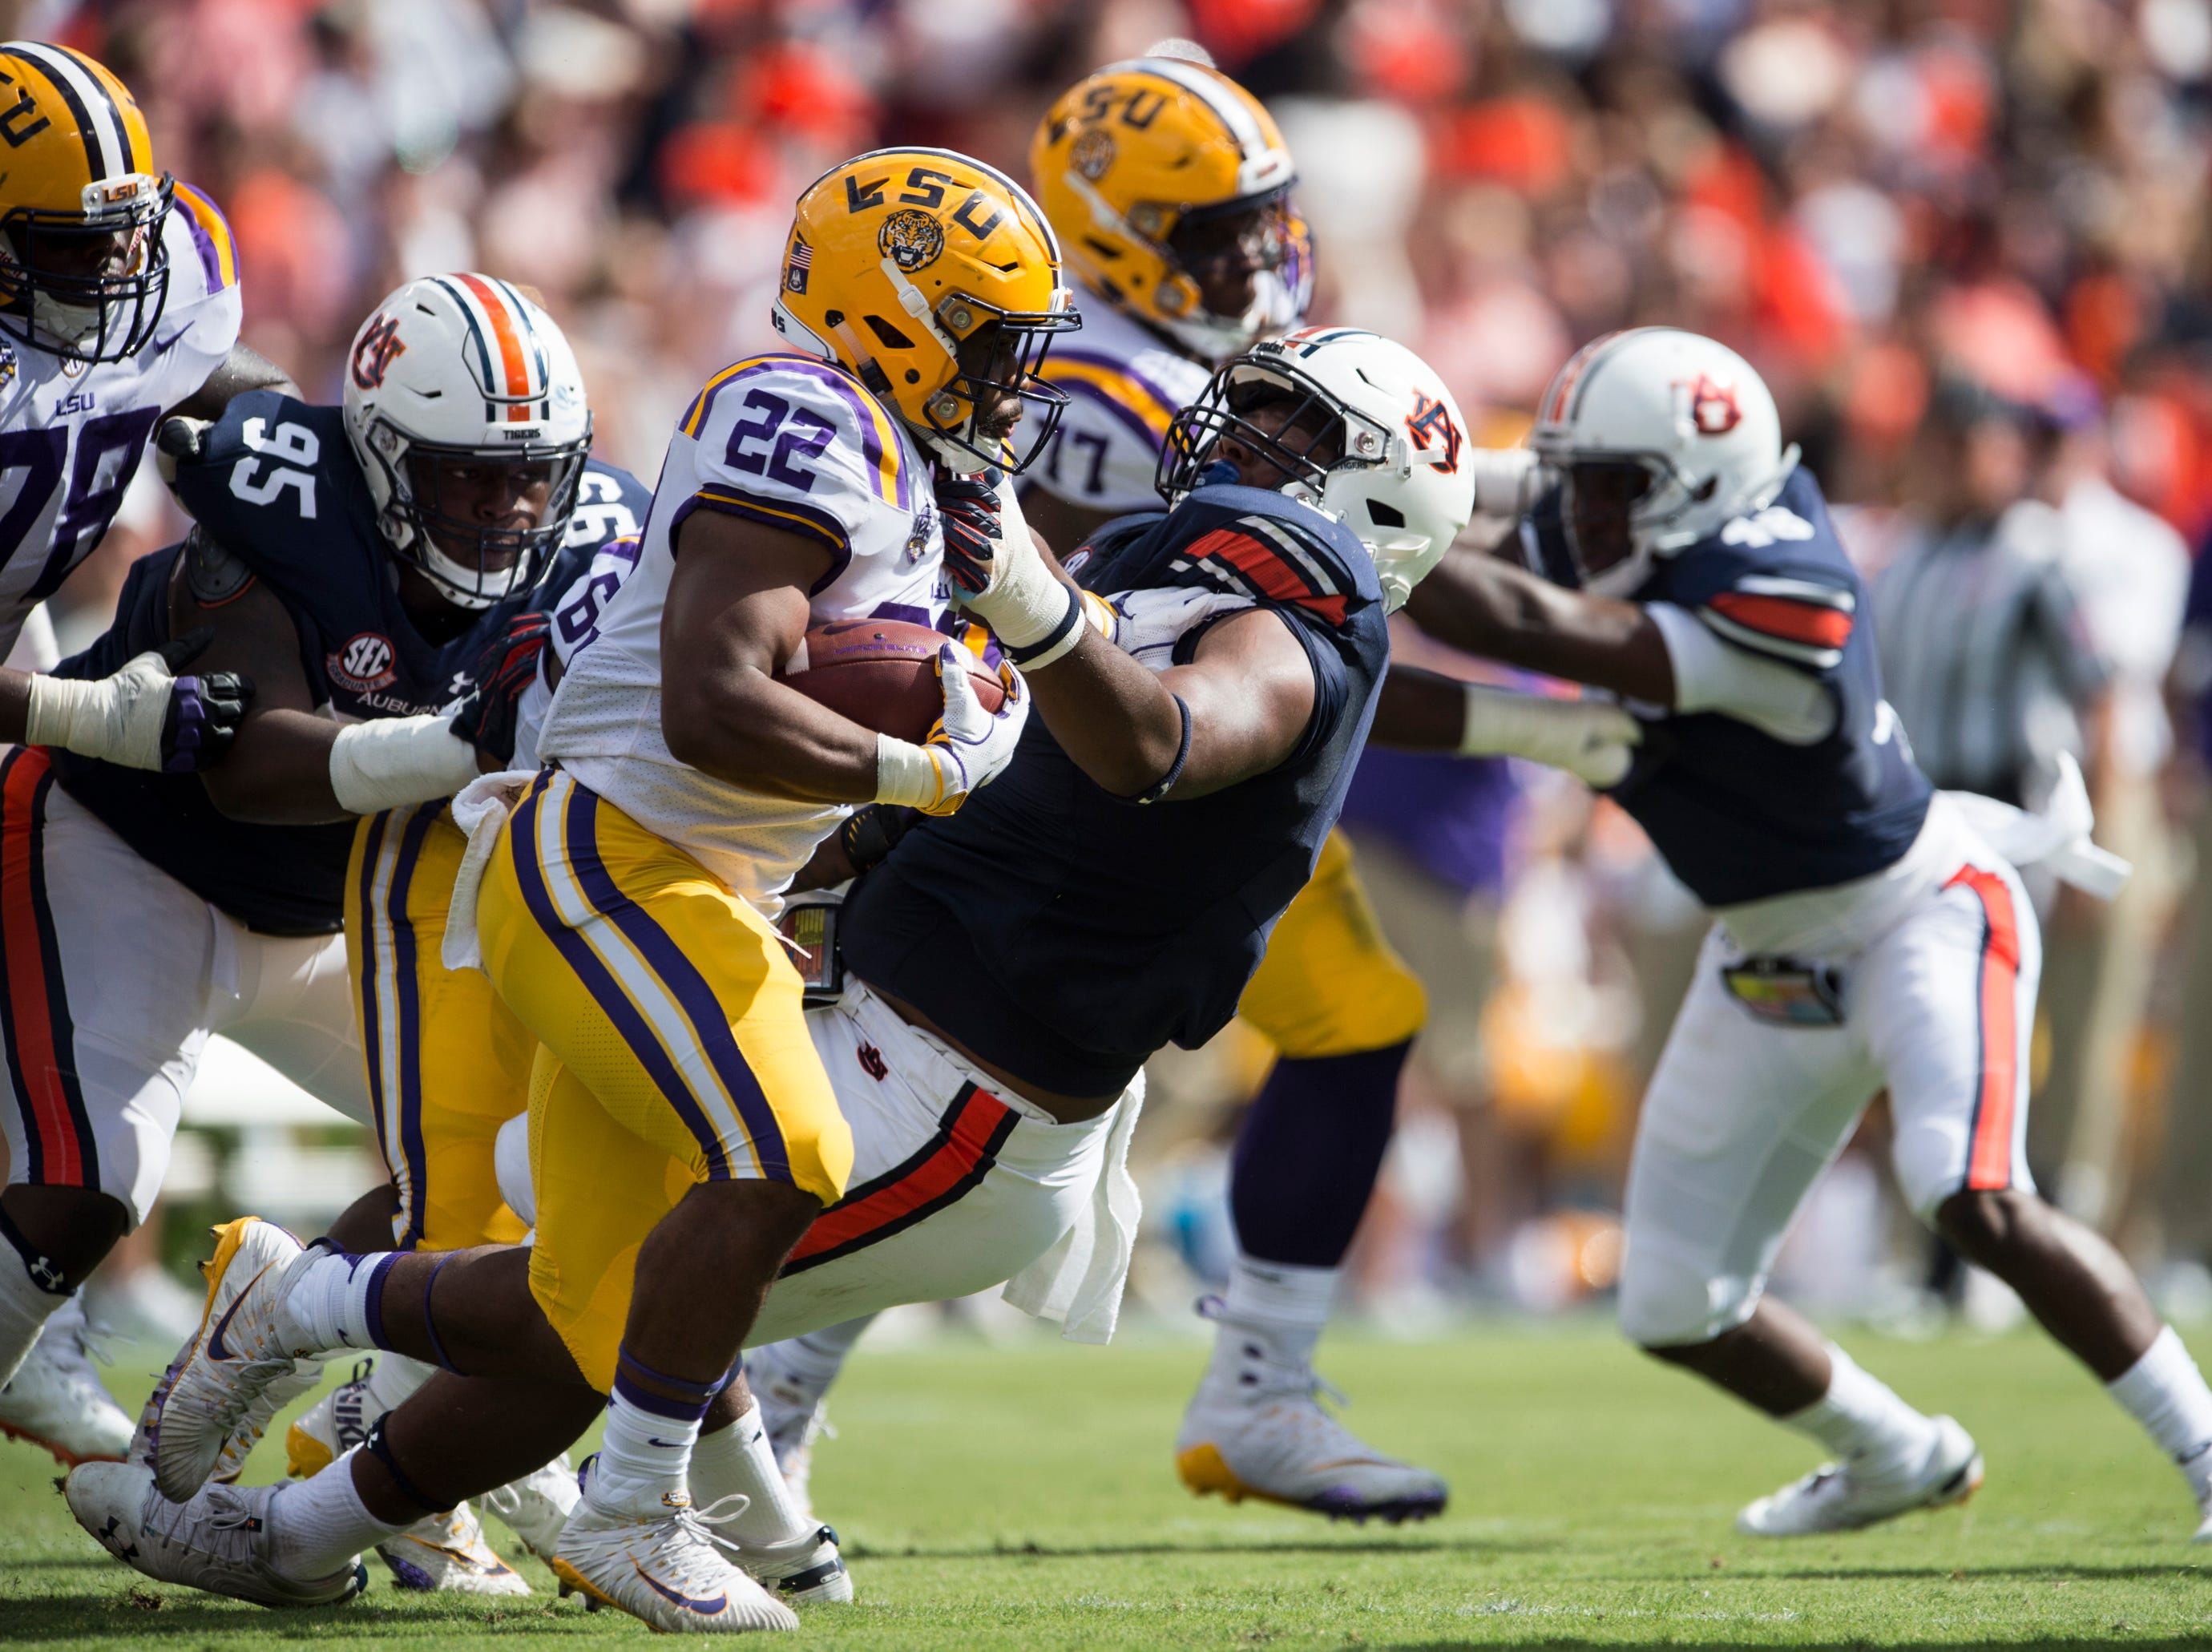 Auburn's Derrick Brown (5) attempts to take down LSU's Clyde Edwards-Helaire (22) at Jordan-Hare Stadium in Auburn, Ala., on Saturday, Sept. 15, 2018. LSU defeated Auburn 22-21.